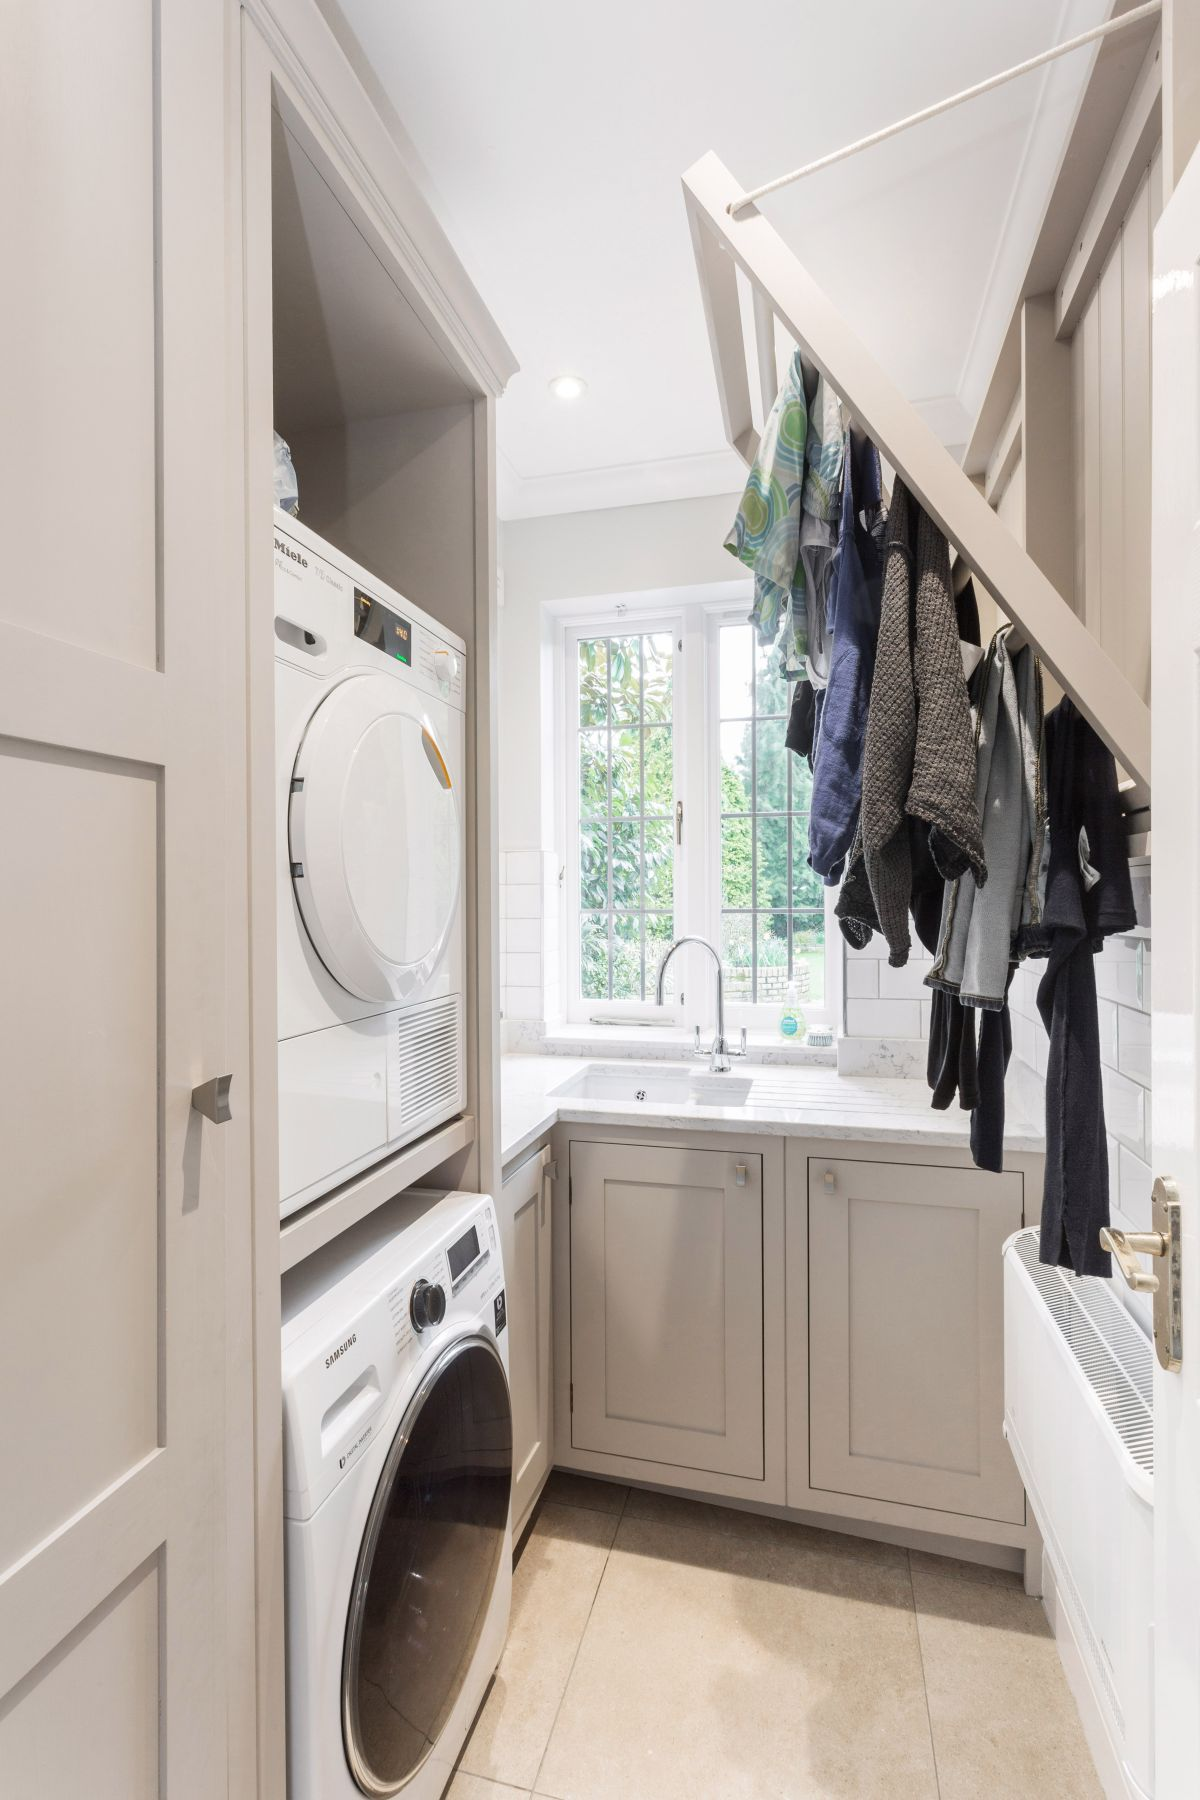 Utility Room Ideas 15 Inspiring Ways To Organise Yours Real Homes